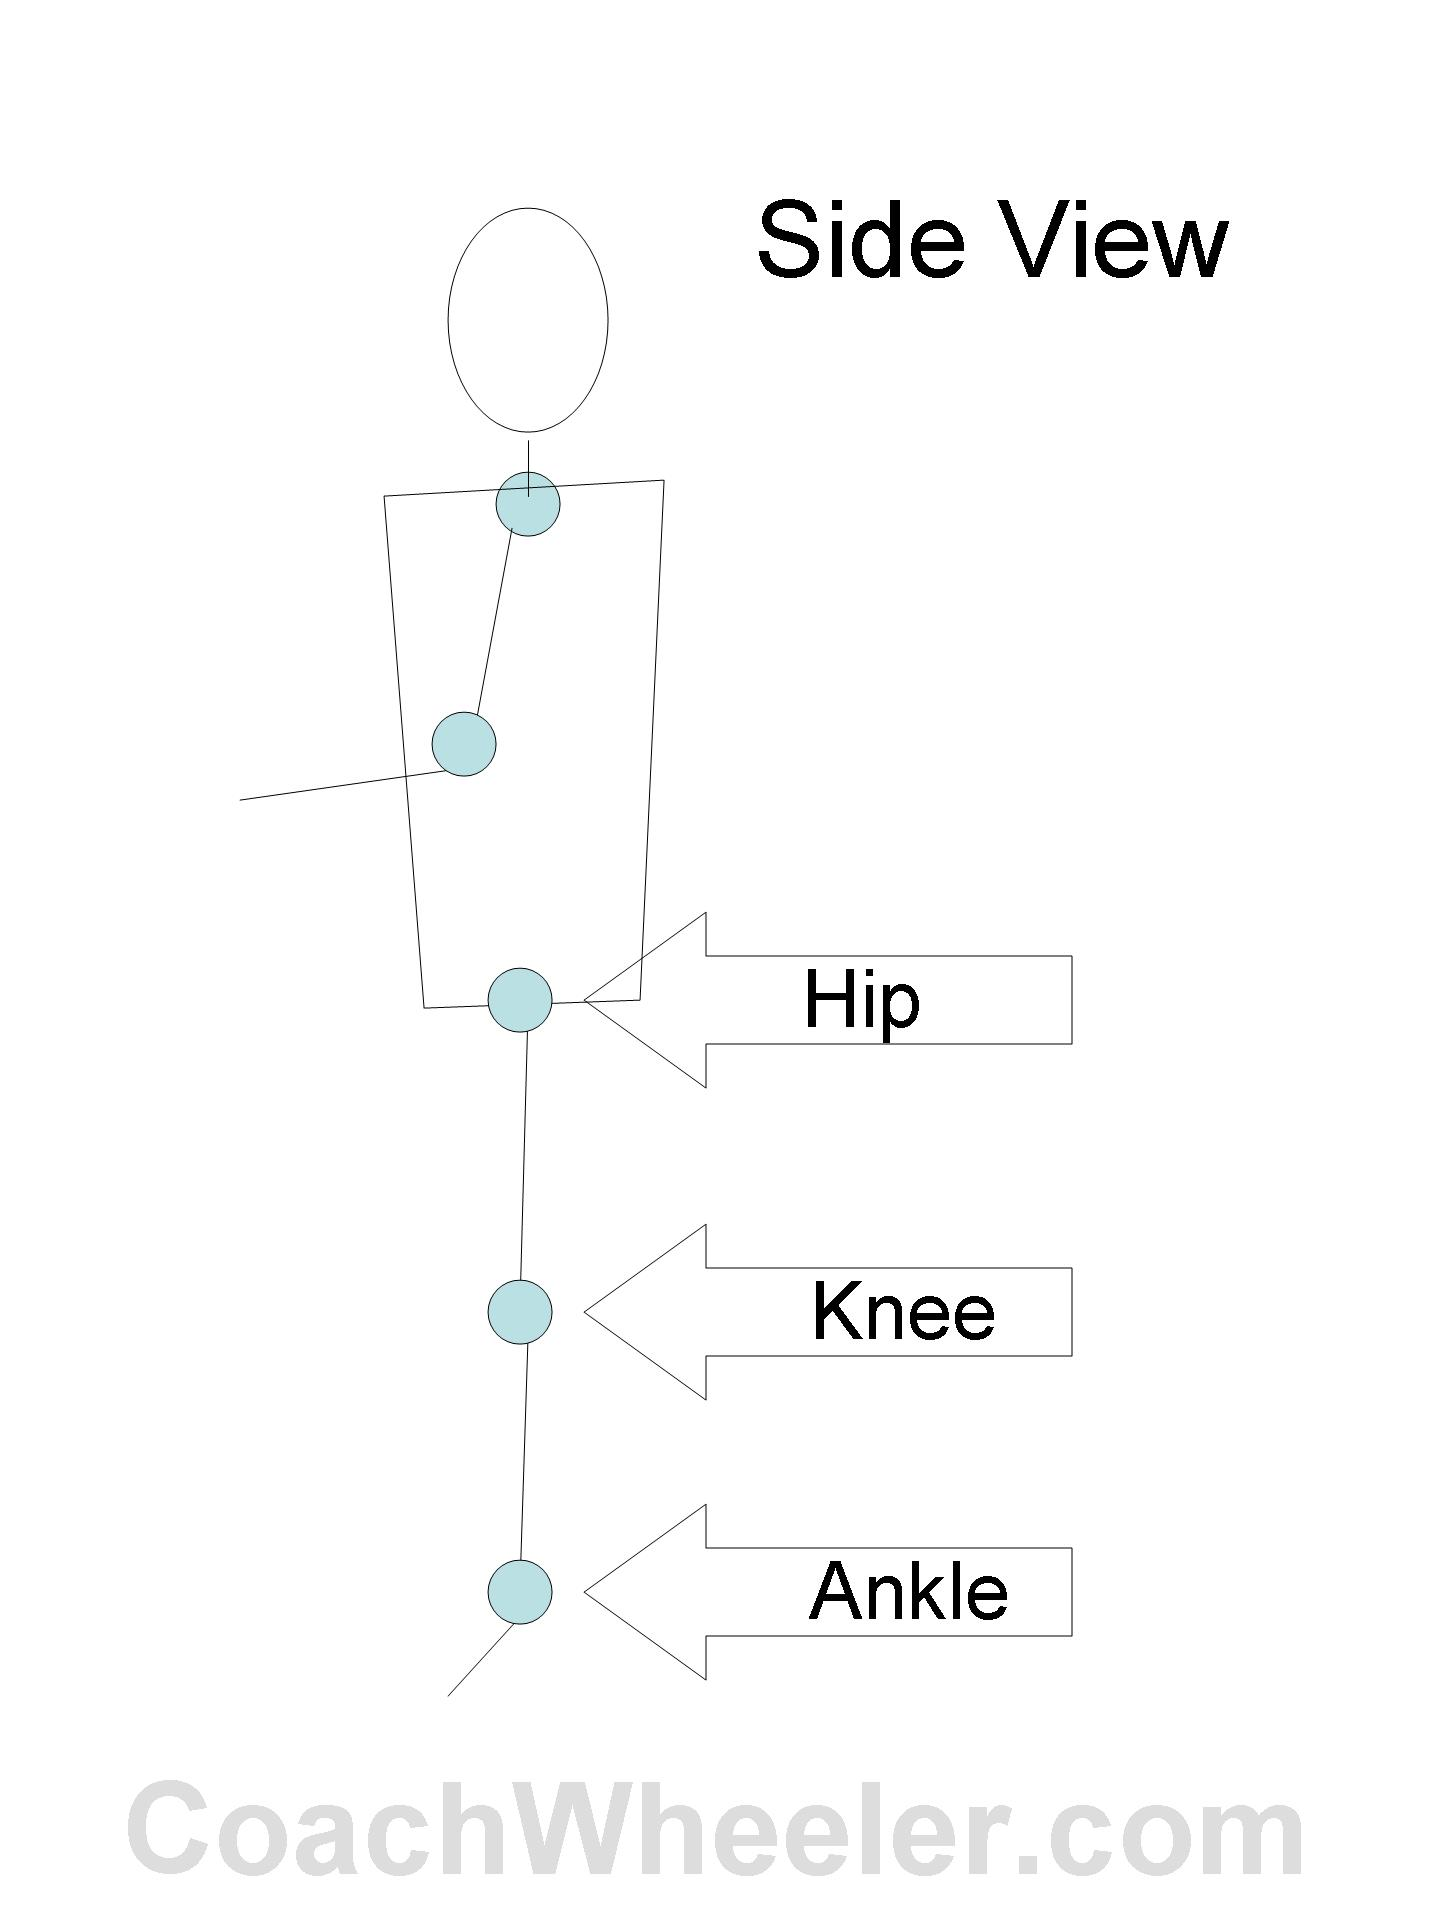 How To Fix Sore Knees From Basketball